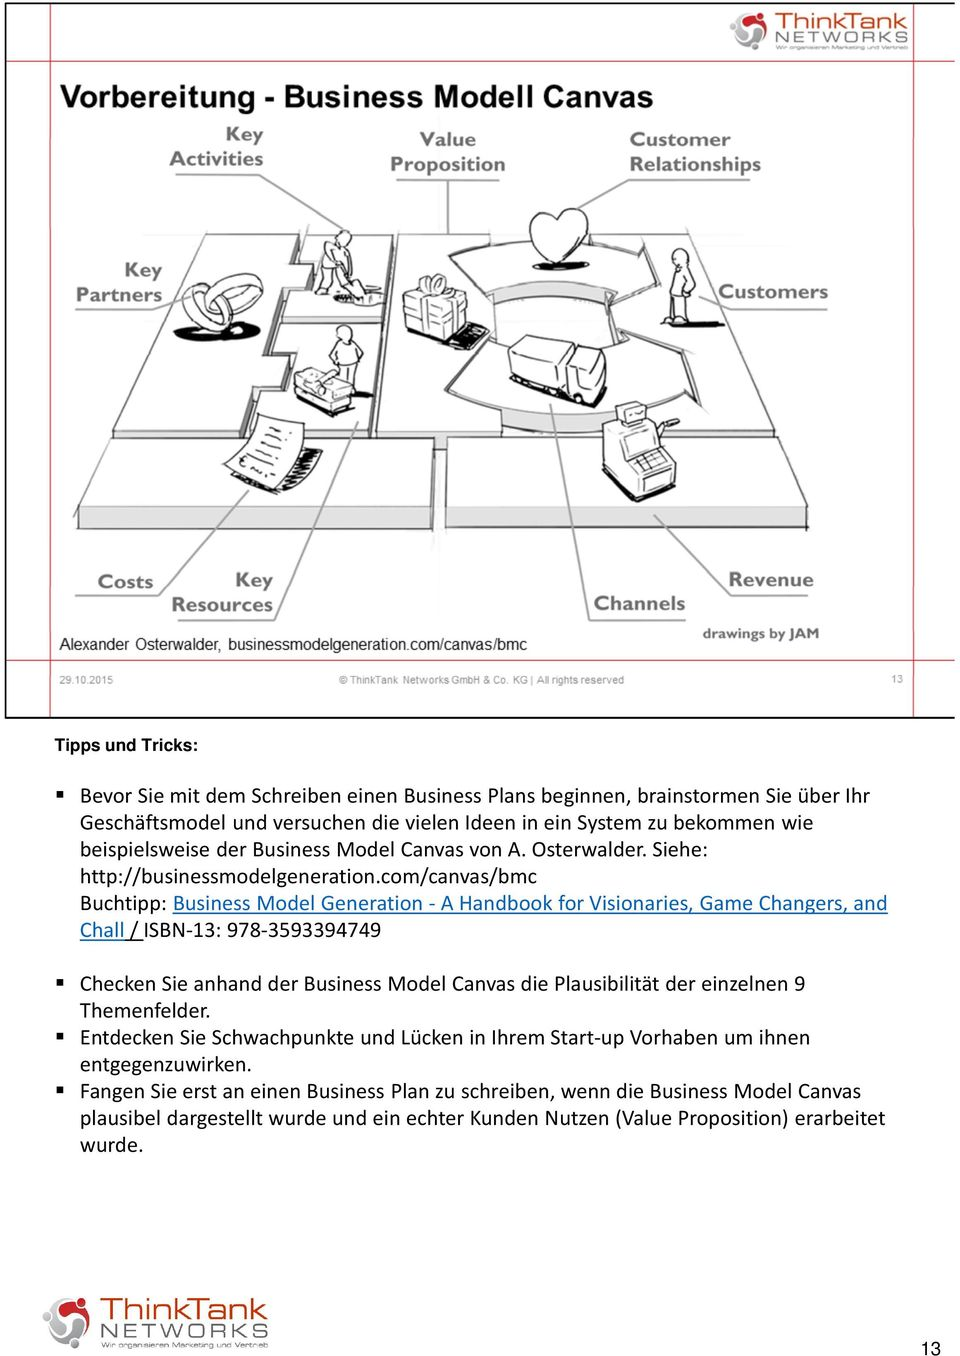 com/canvas/bmc Buchtipp: Business Model Generation - A Handbook for Visionaries, Game Changers, and Chall / ISBN-13: 978-3593394749 Checken Sie anhand der Business Model Canvas die